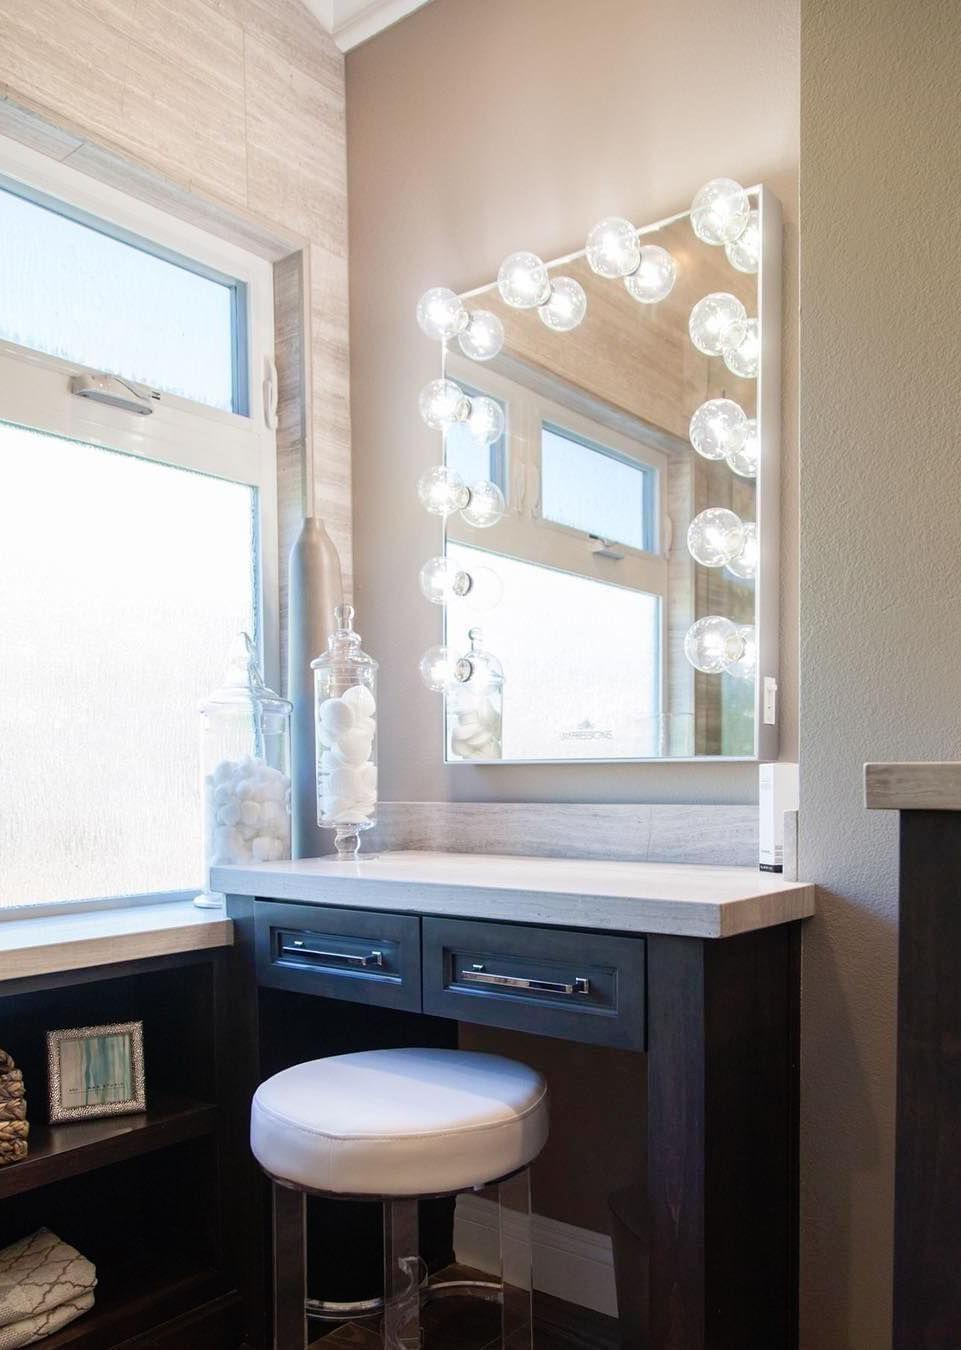 Modern and rustic in dressing room dresser